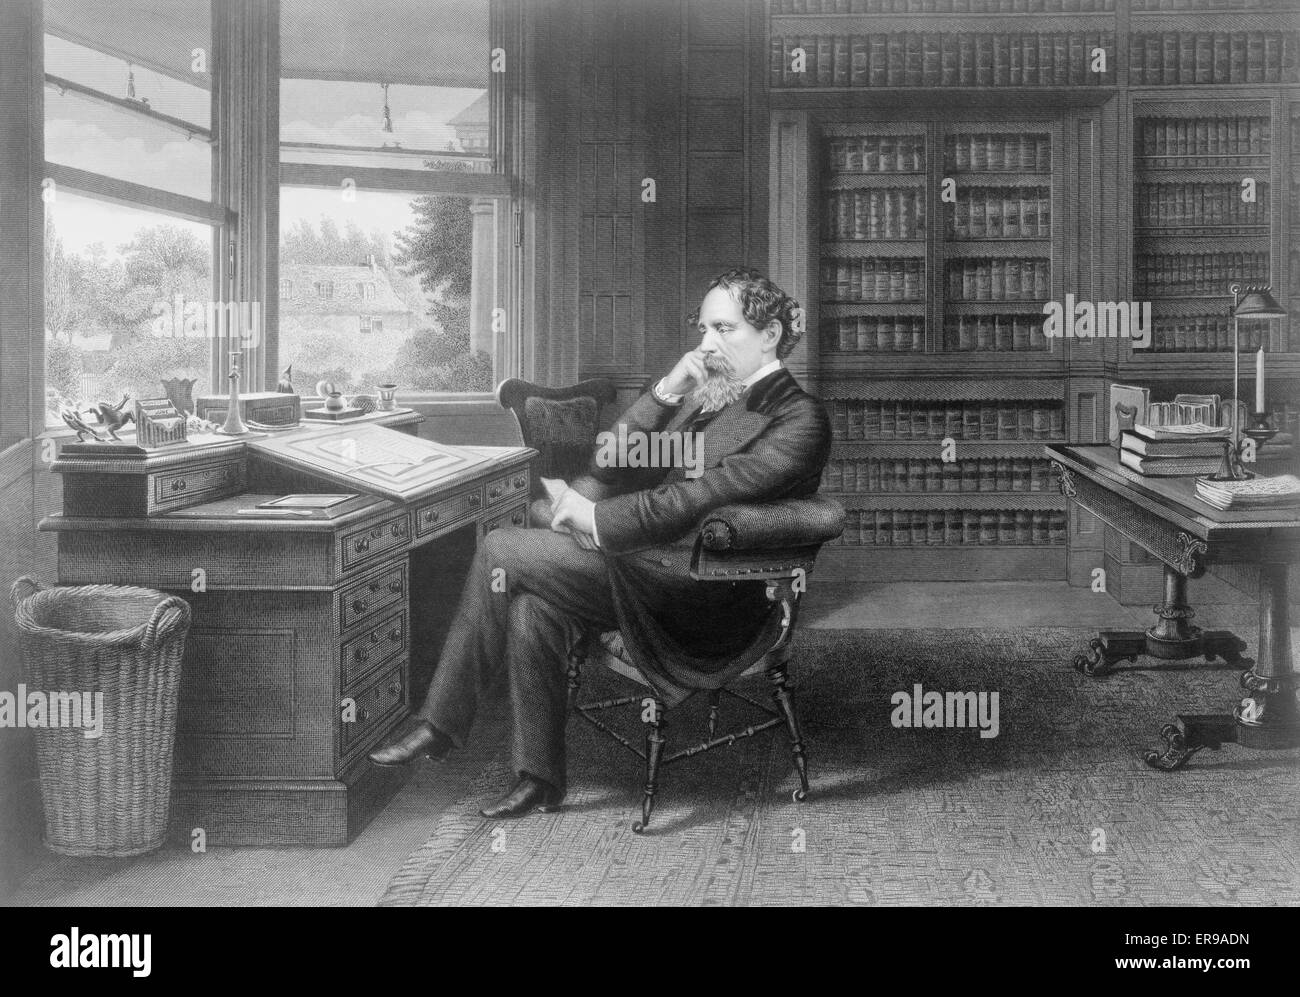 Charles Dickens in his study at Gadshill. Charles Dickens, full-length portrait, seated at desk, facing left, in - Stock Image